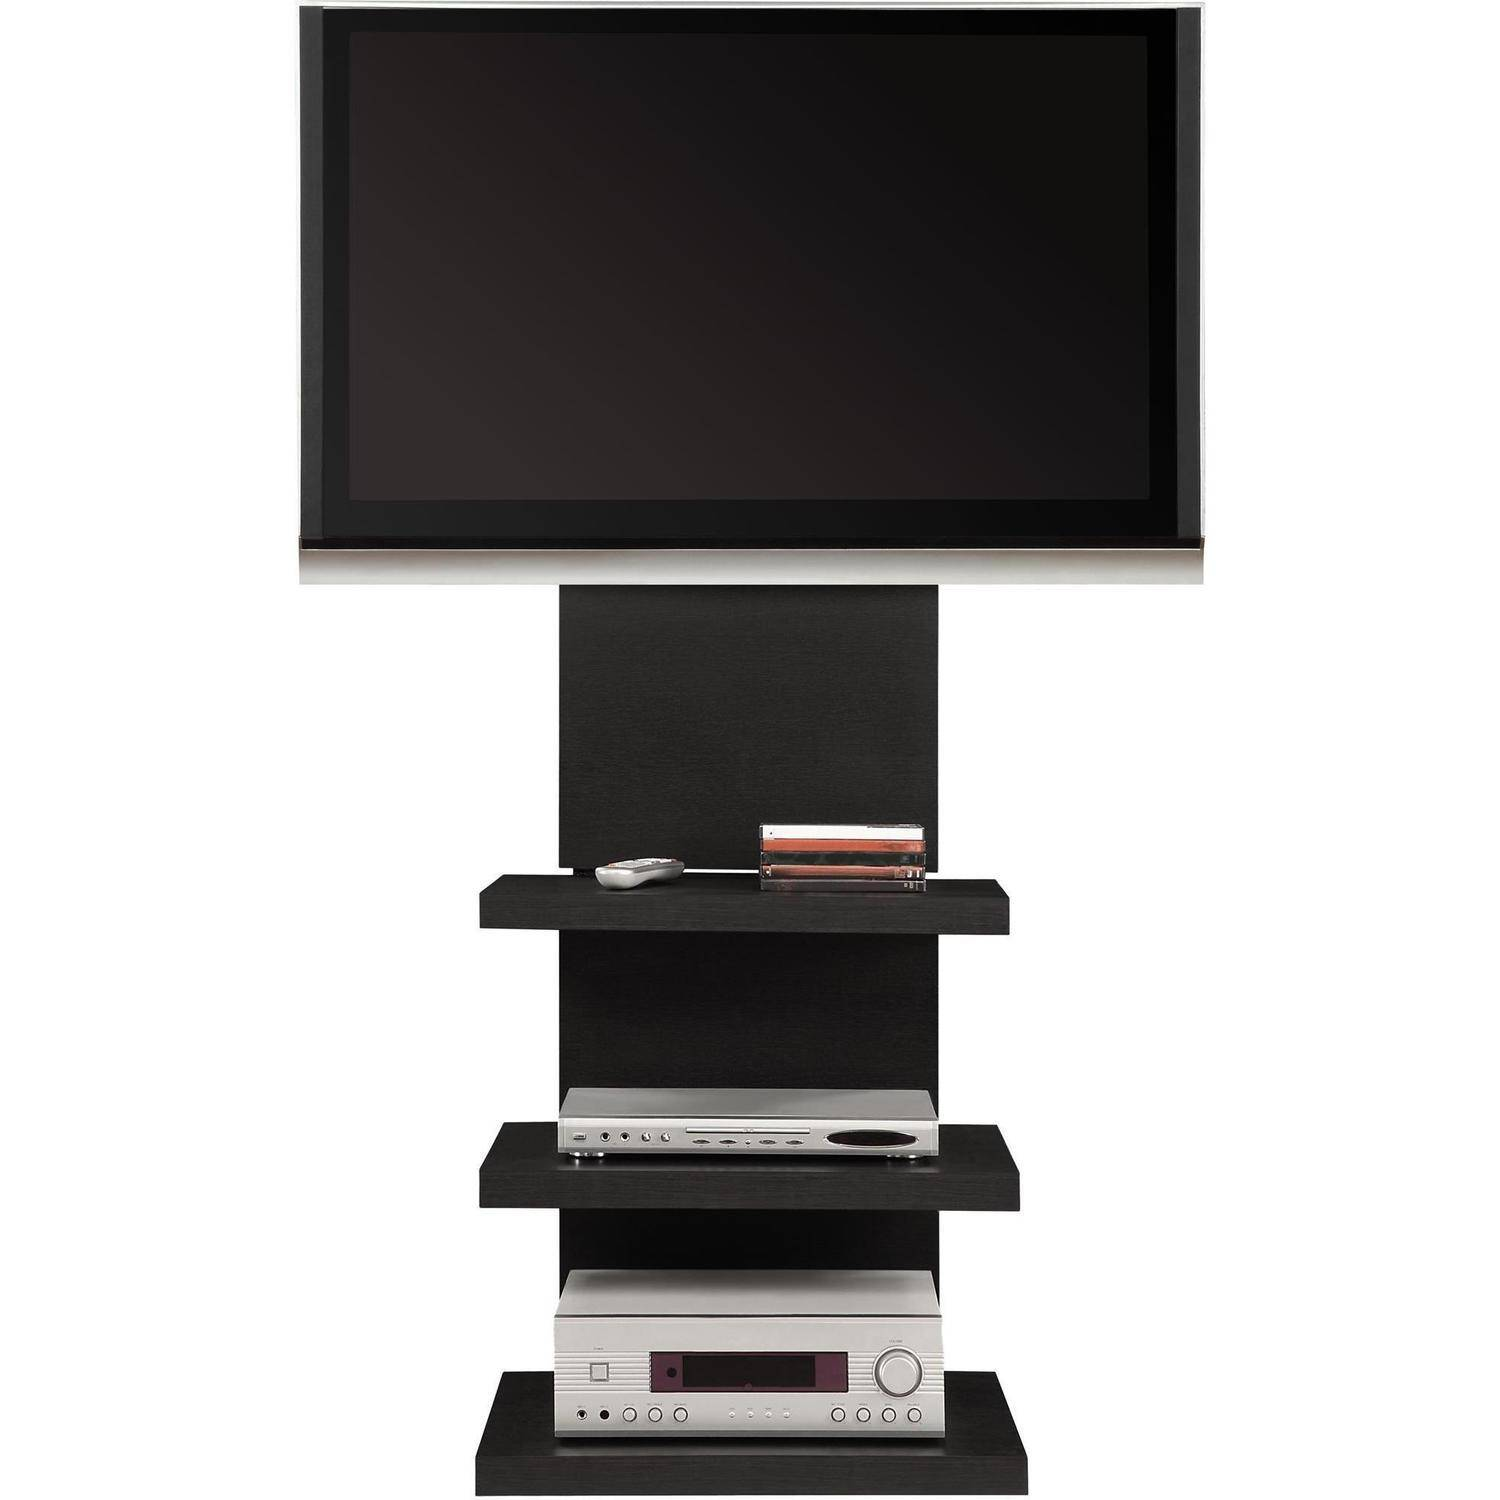 Altra-Wall-Mount-TV-Stand-with-3-Shelves- - Altra Wall Mount TV Stand With 3 Shelves, For TVs Up To 60